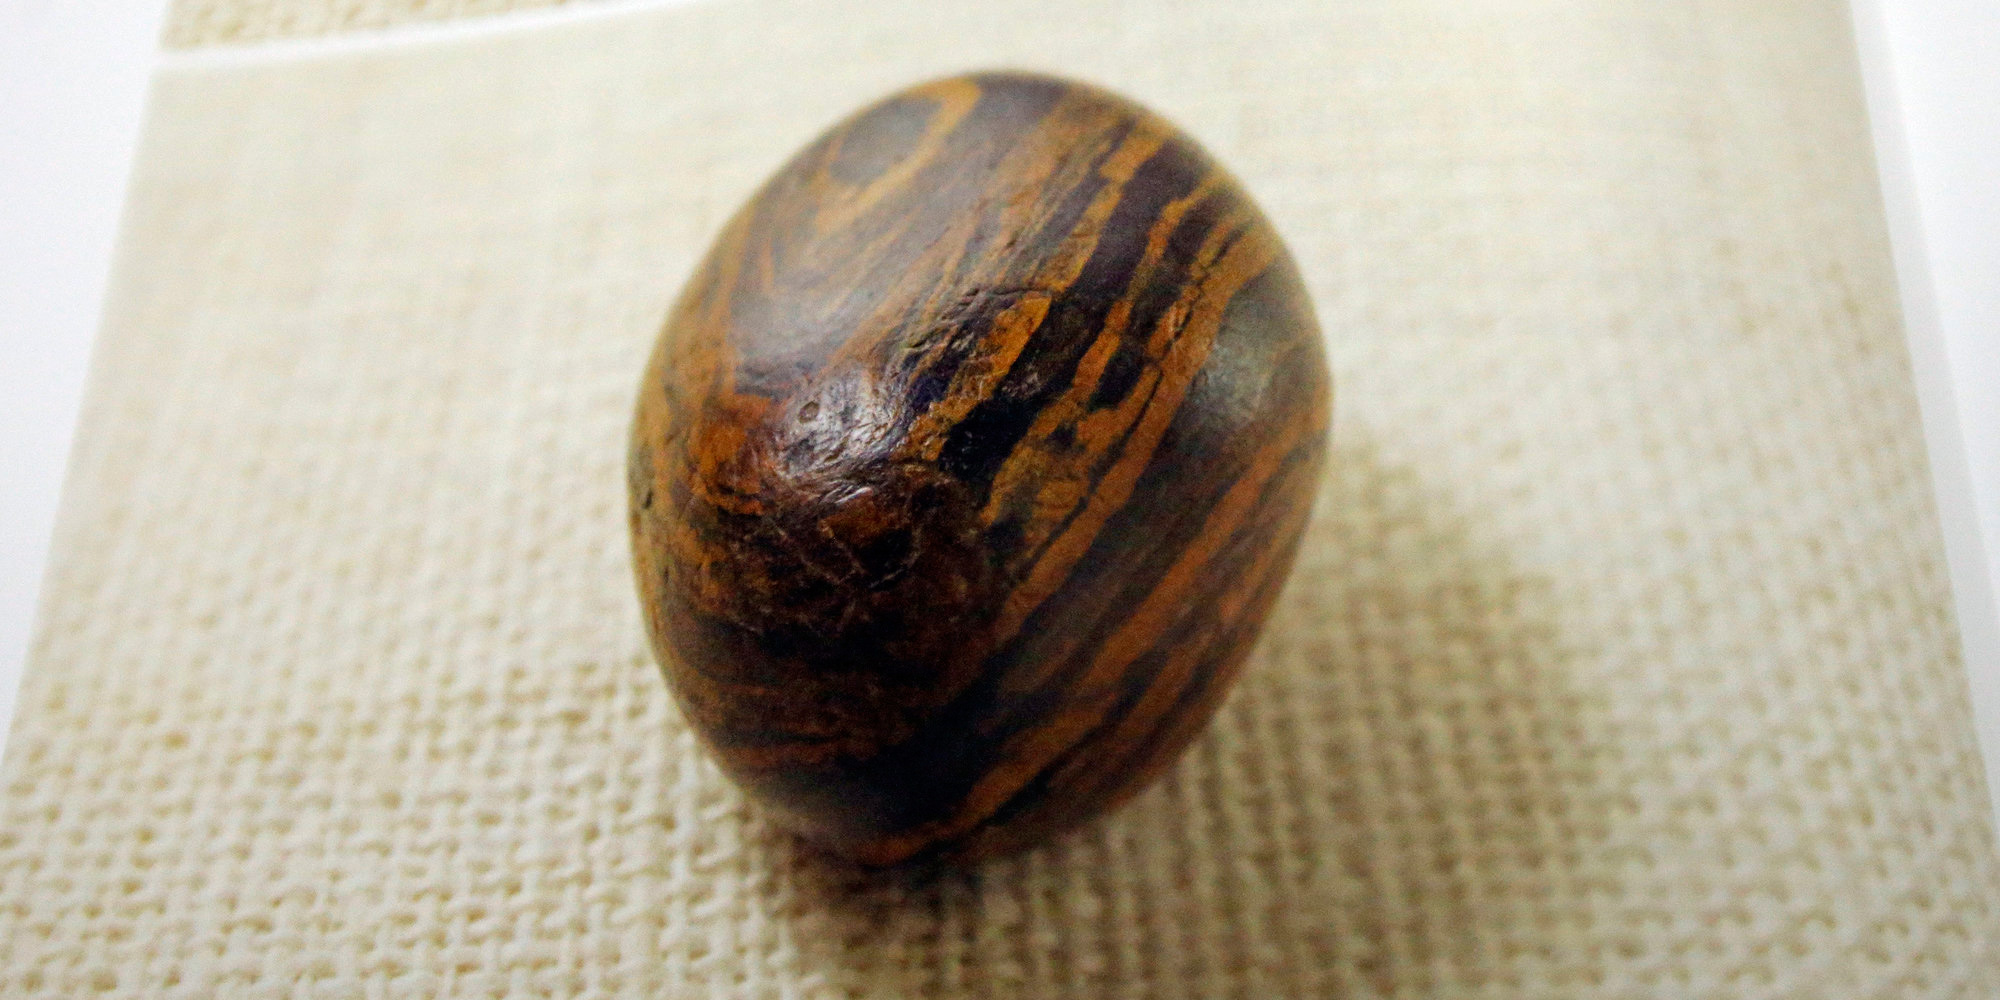 A small stone sits on a cloth. The stone has various small pits and is a dark brown, colored with rust-colored stripes.